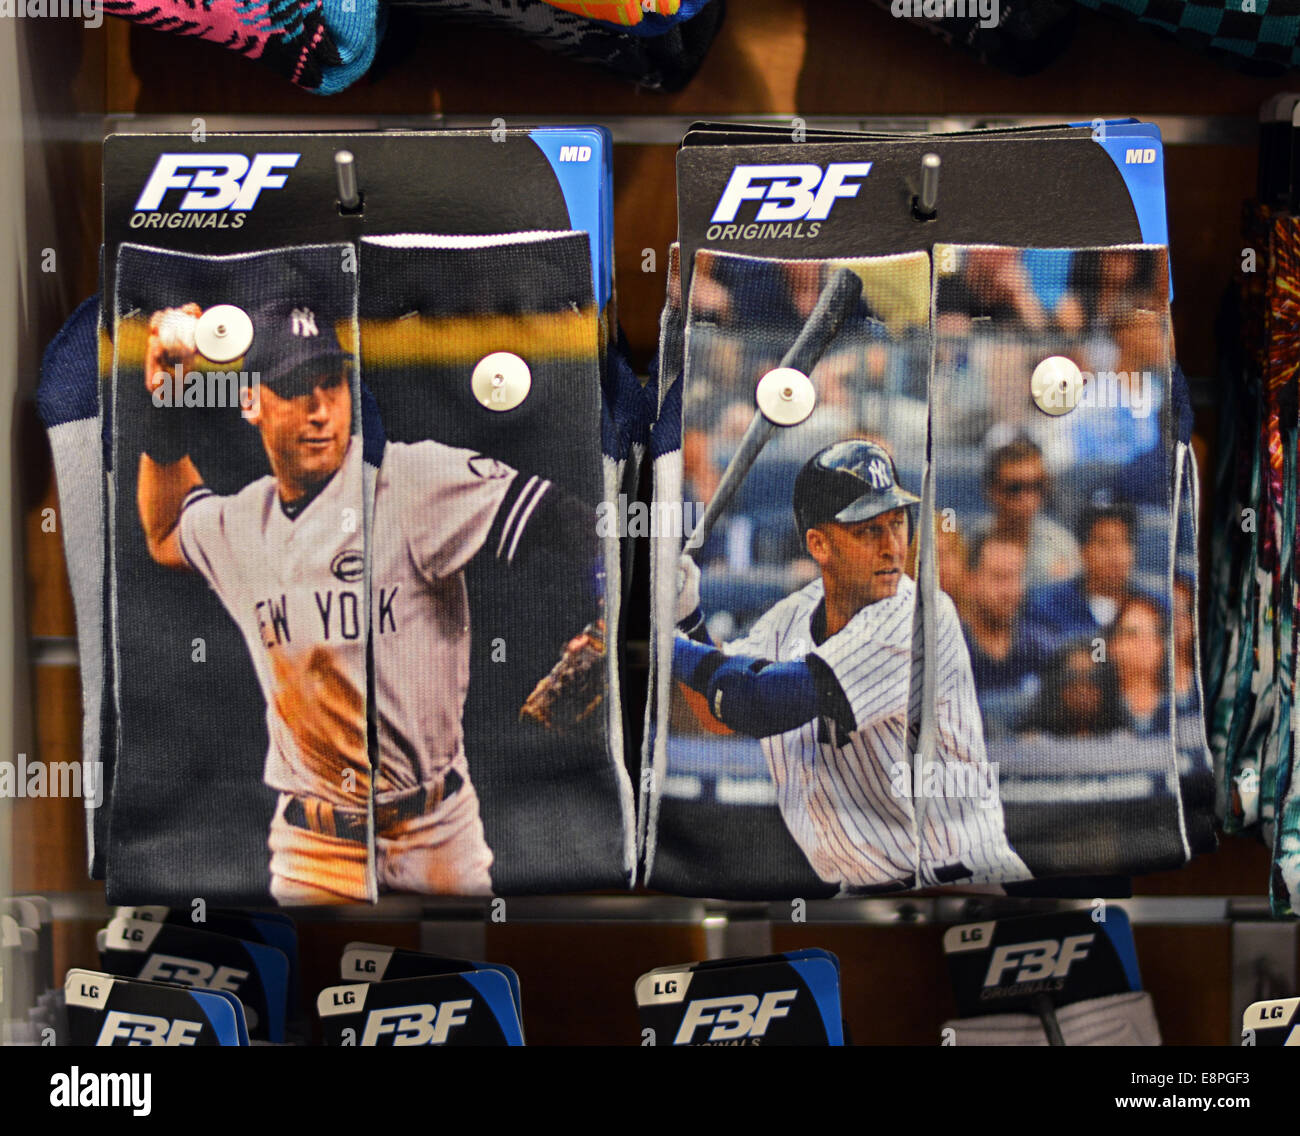 Socks with images of Derek Jeter for sale at Foot Locker store in Roosevelt Field in Garden City, Long Island, New - Stock Image